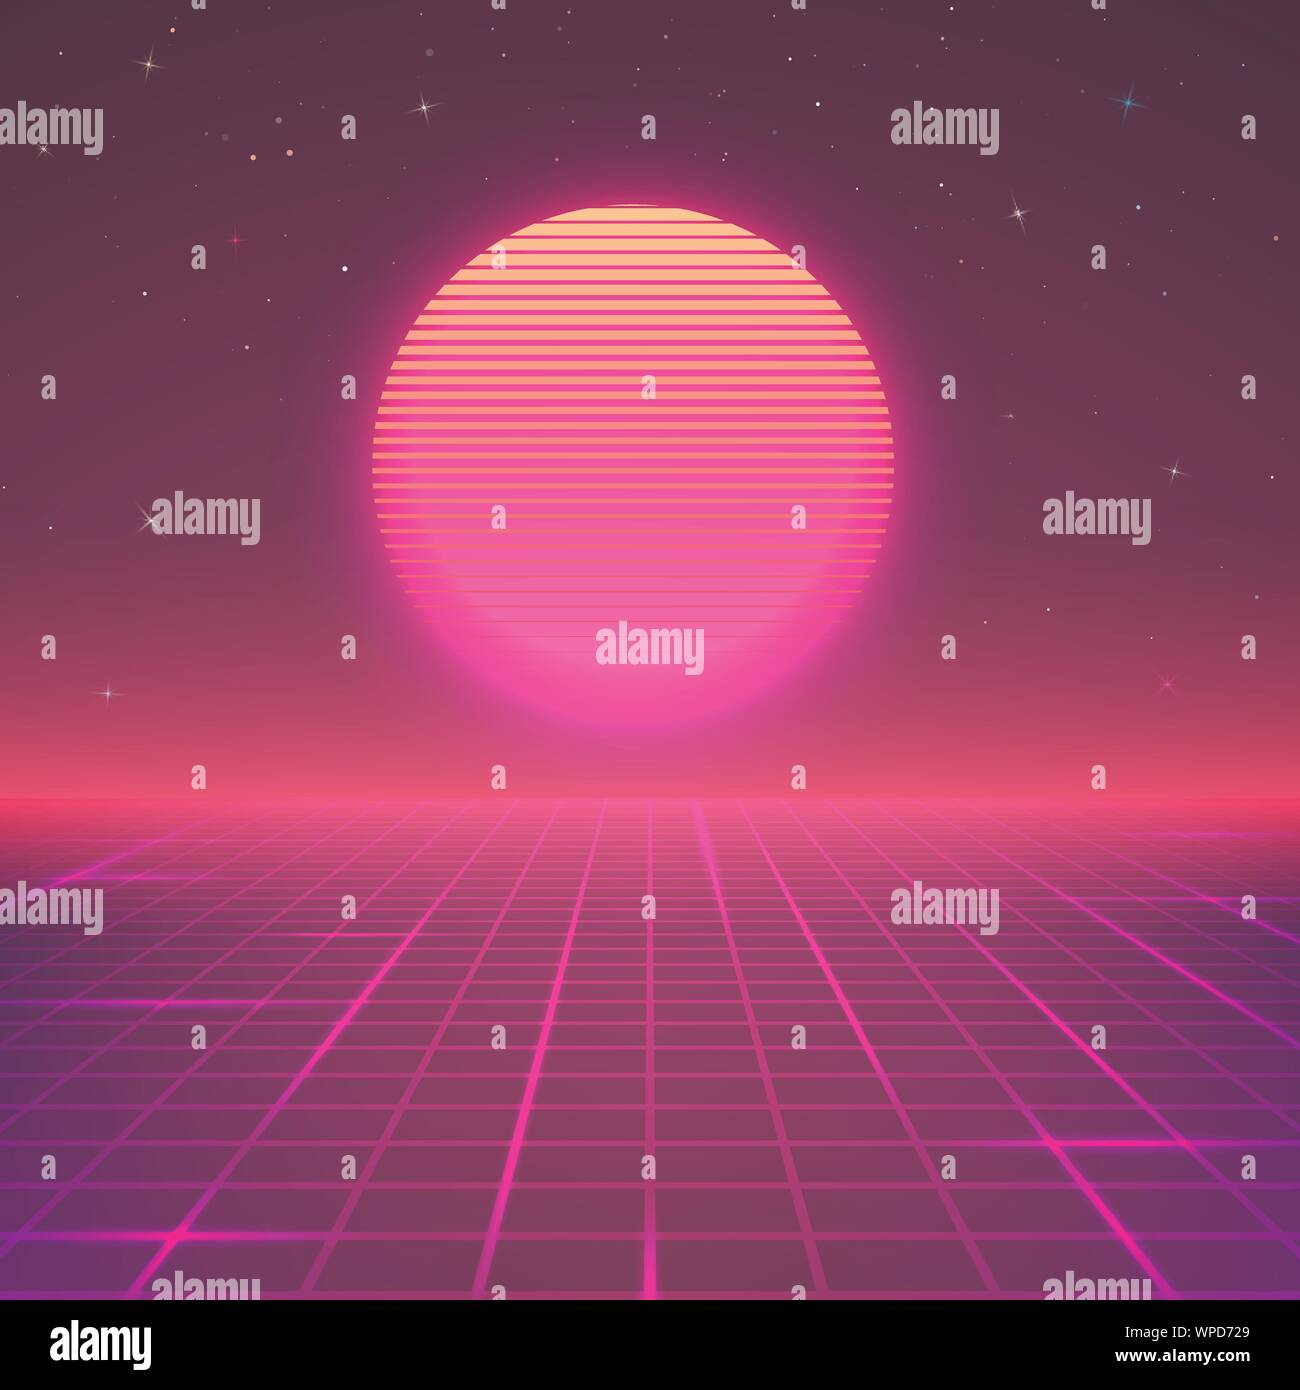 80s Style Background Sci Fi Or Retro Music Poster Wallpaper